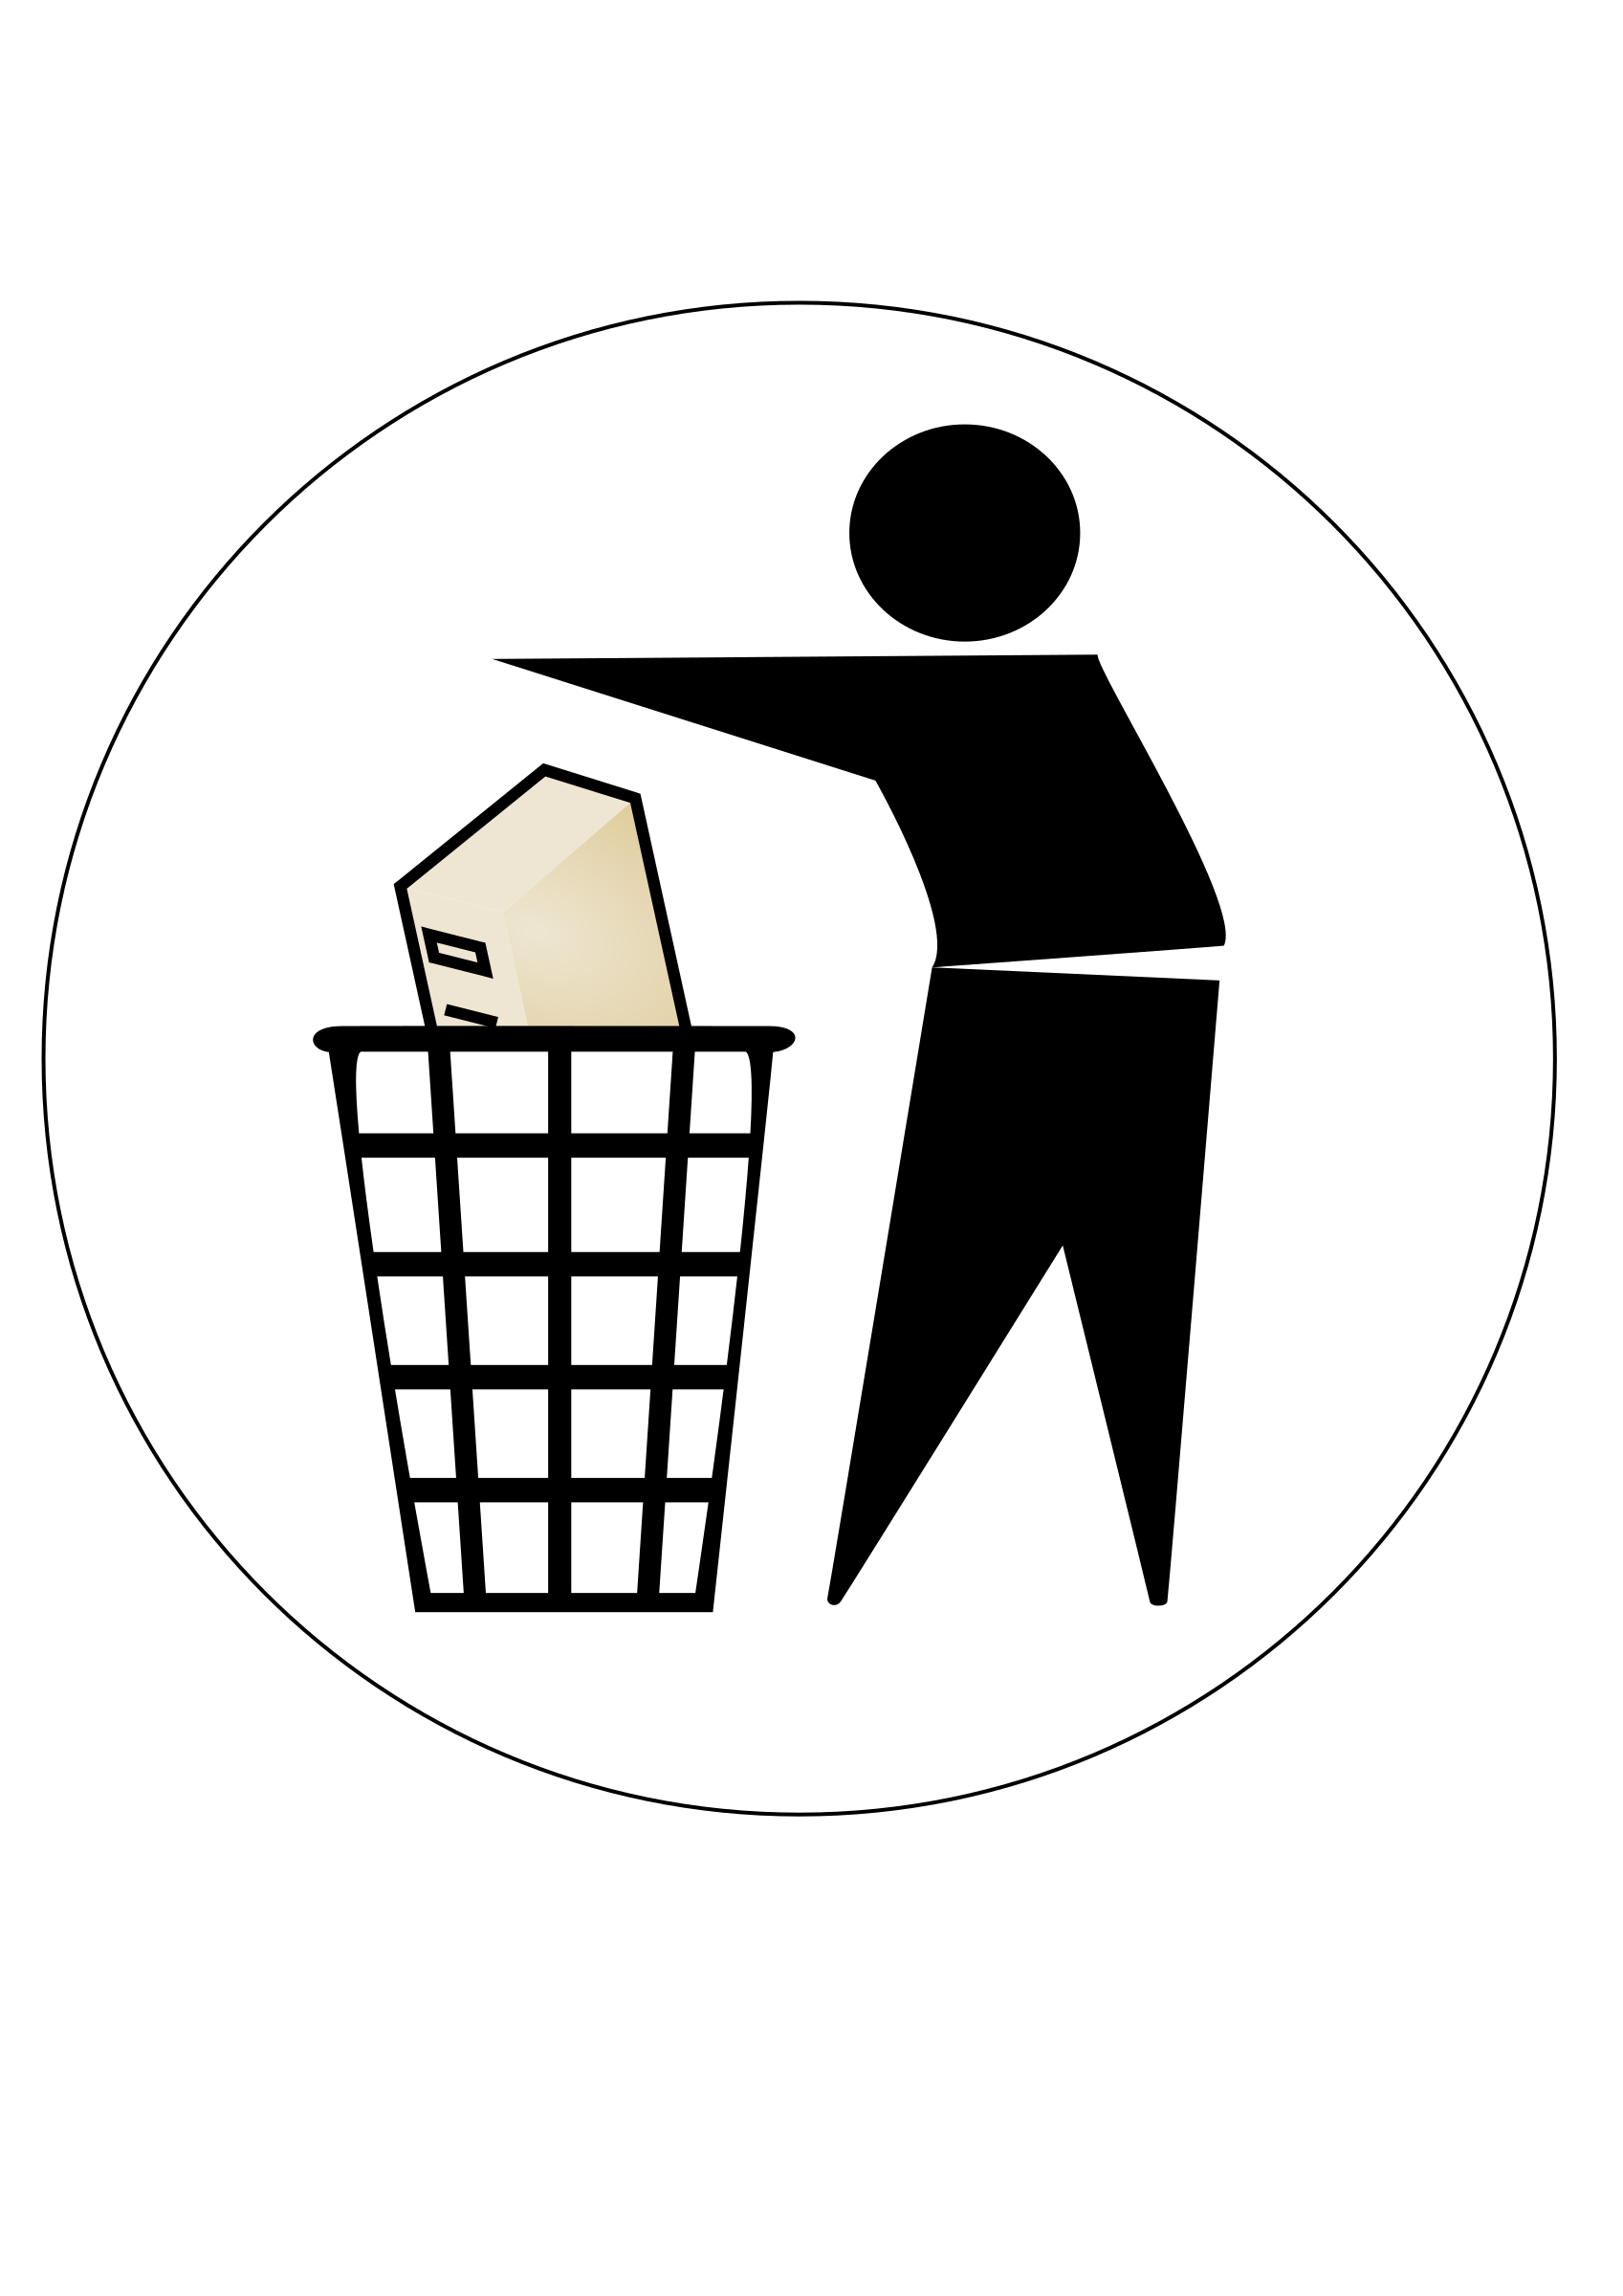 Clipart computer waste. Throw away big image